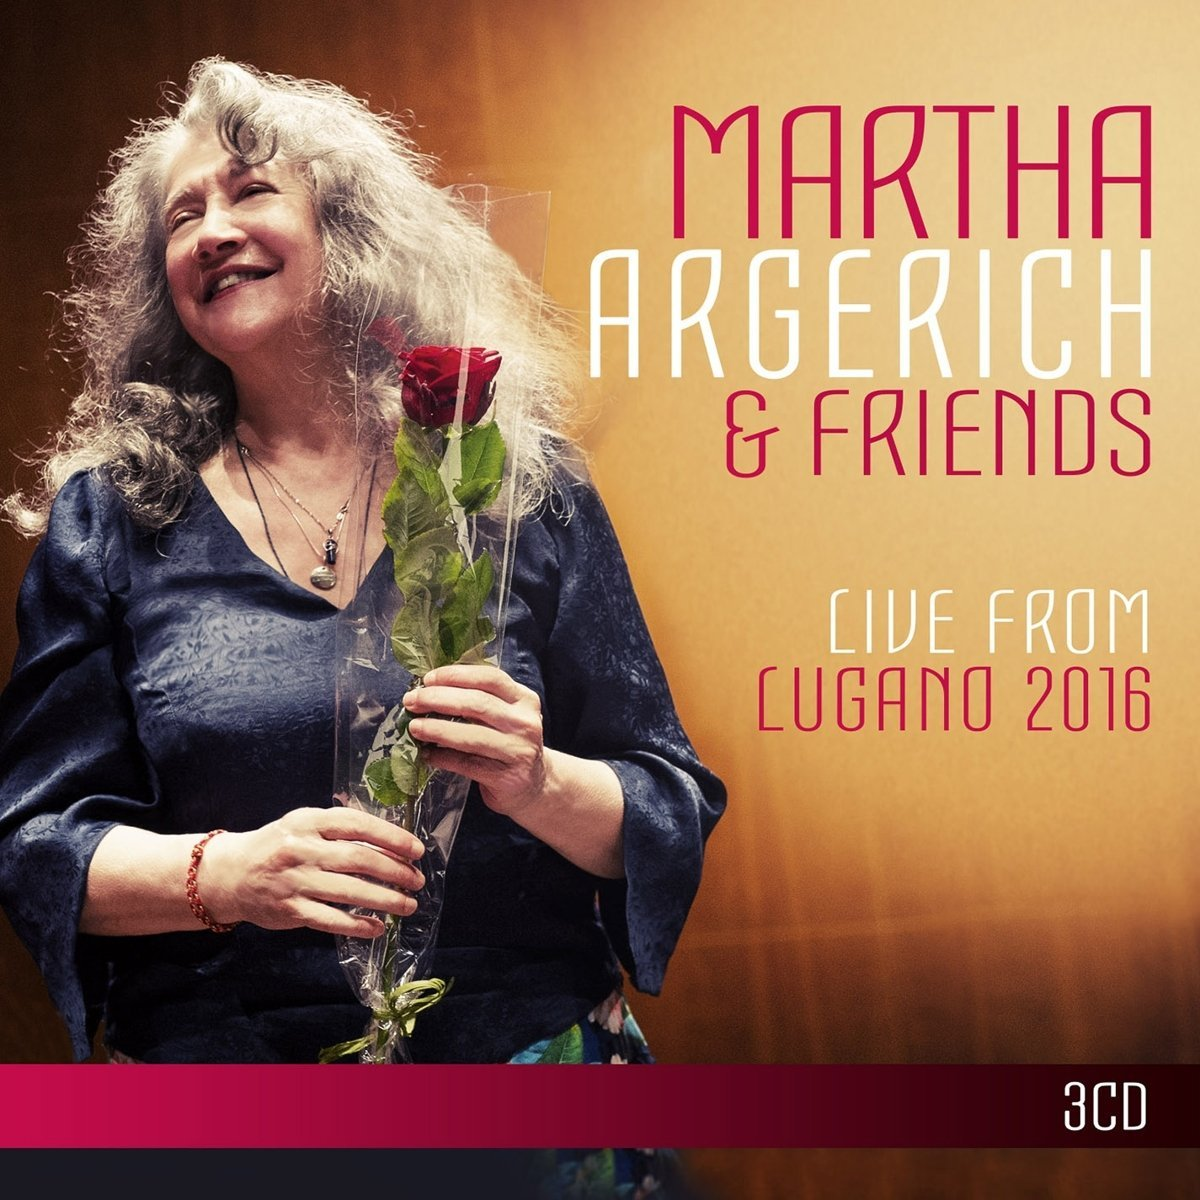 Martha Argerich and Friends: Live from Lugano